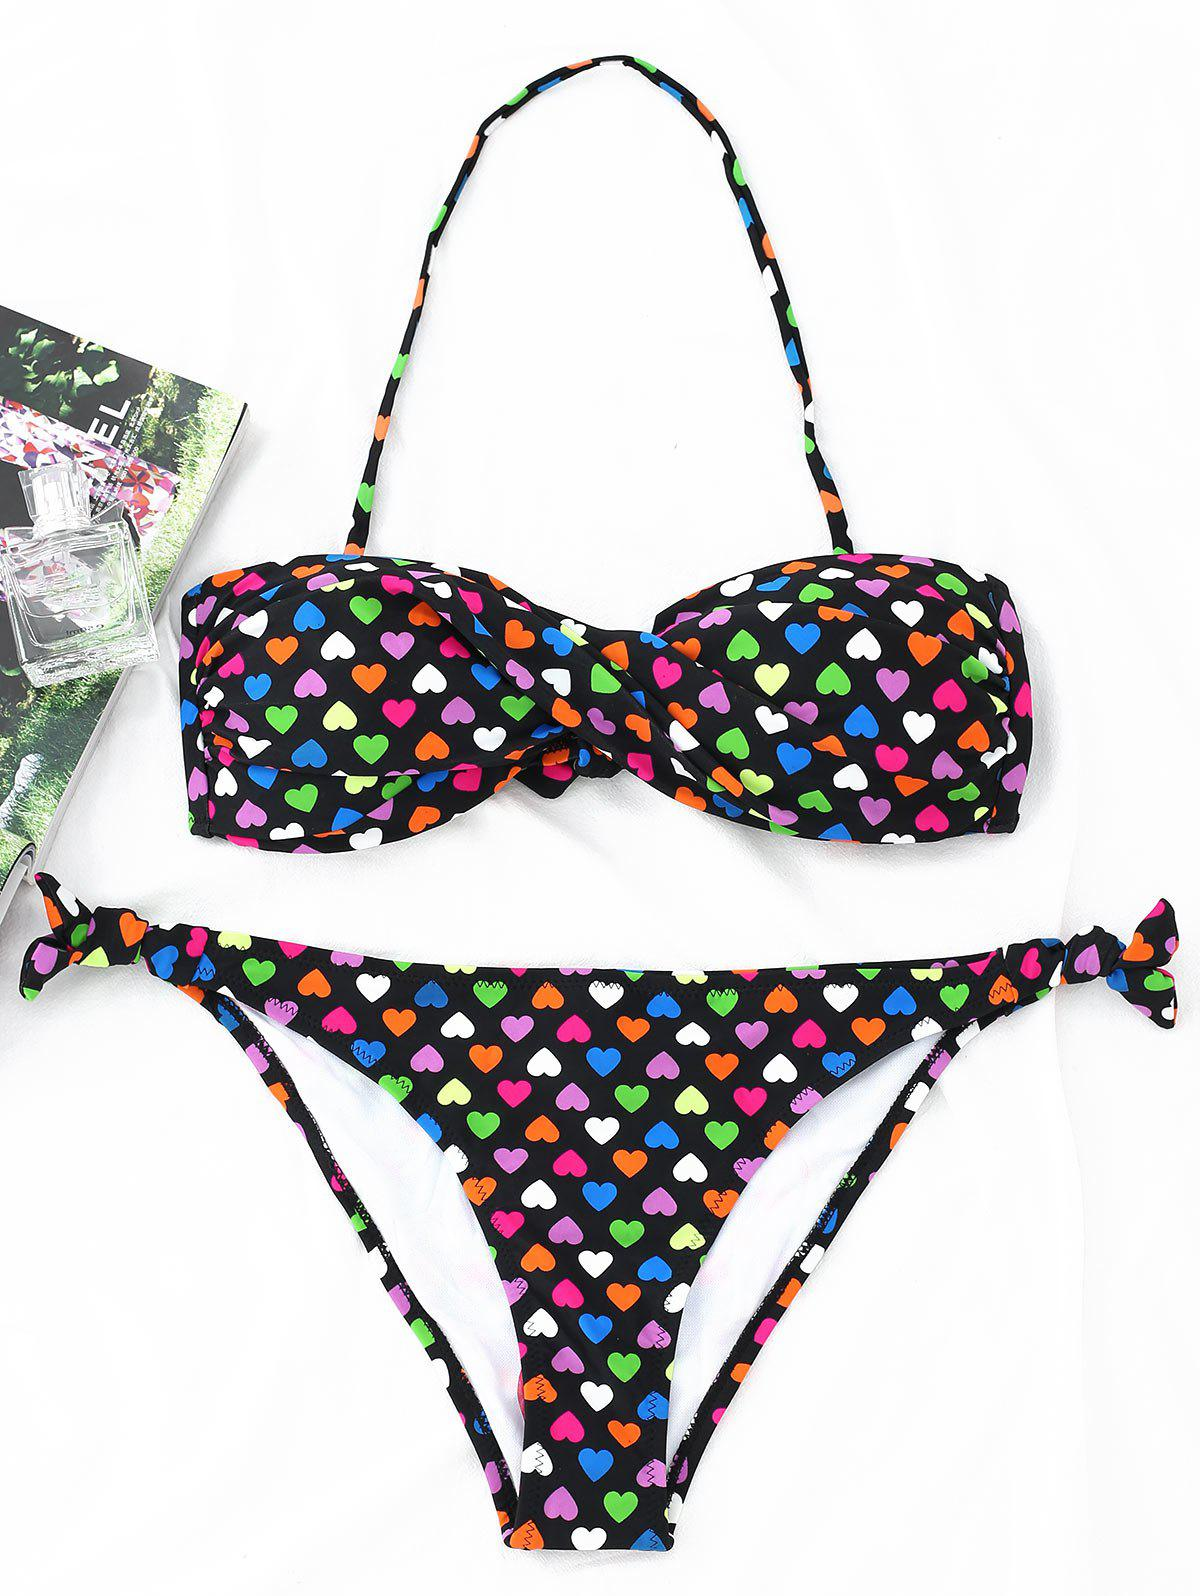 Twist Bandeau Hearts Print Bikini Set the domestication and exploitation of plants and animals